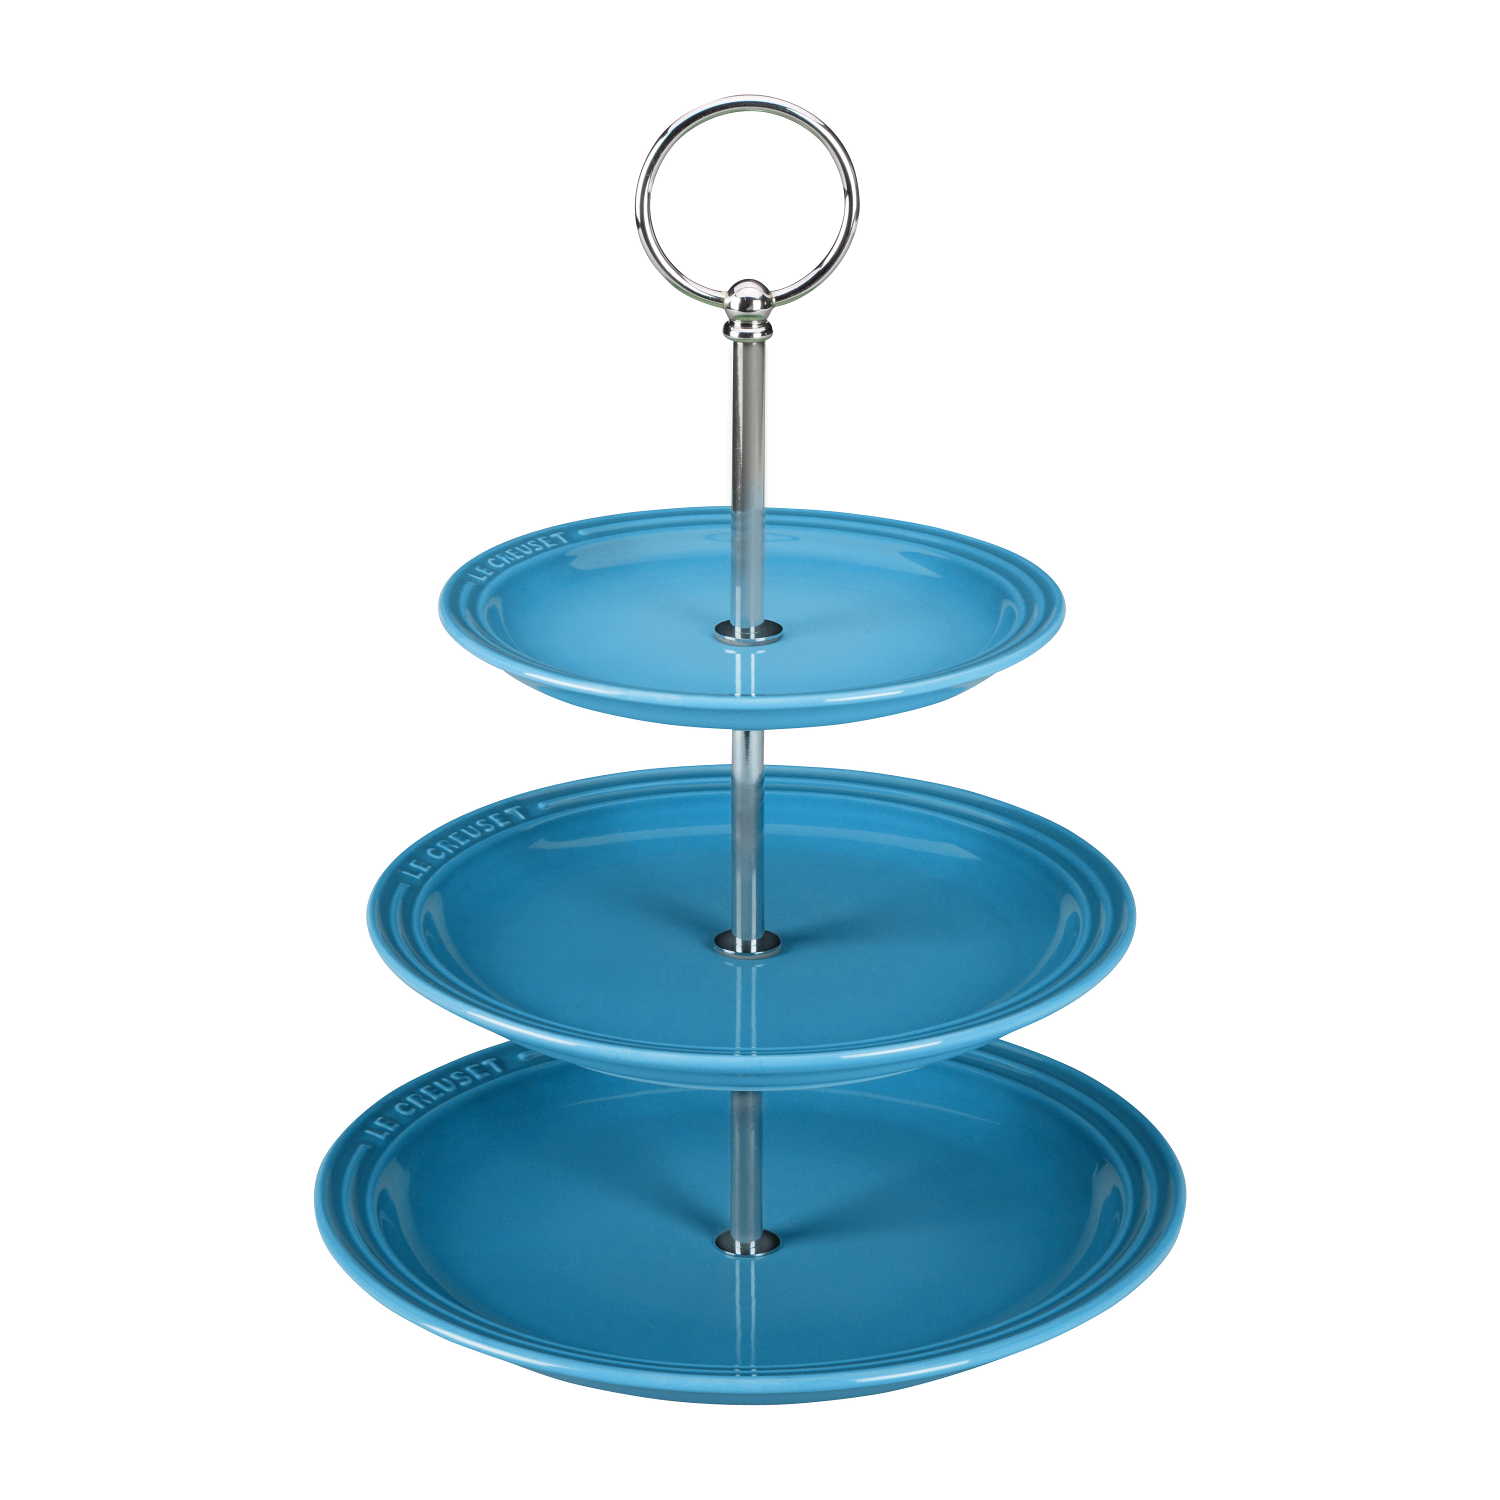 Le Creuset Caribbean Stoneware 14.5 Inch 3-Tiered Serving Stand